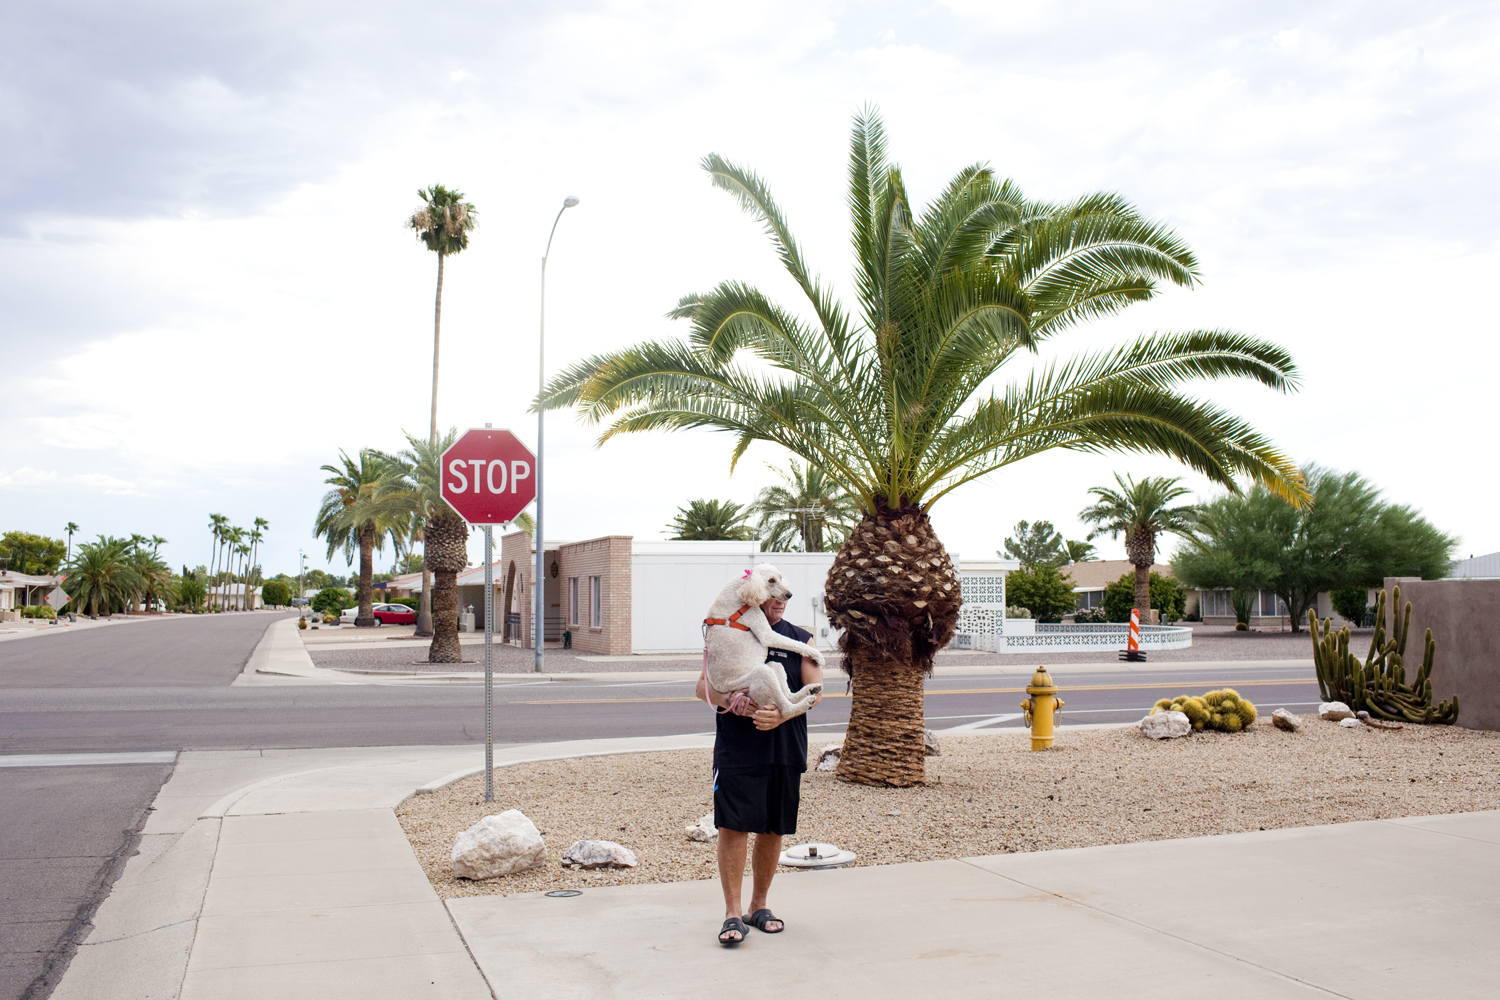 Bill Pearson, 62, with his standard poodle Phoenix stands outside of his home in Sun City, Arizona.